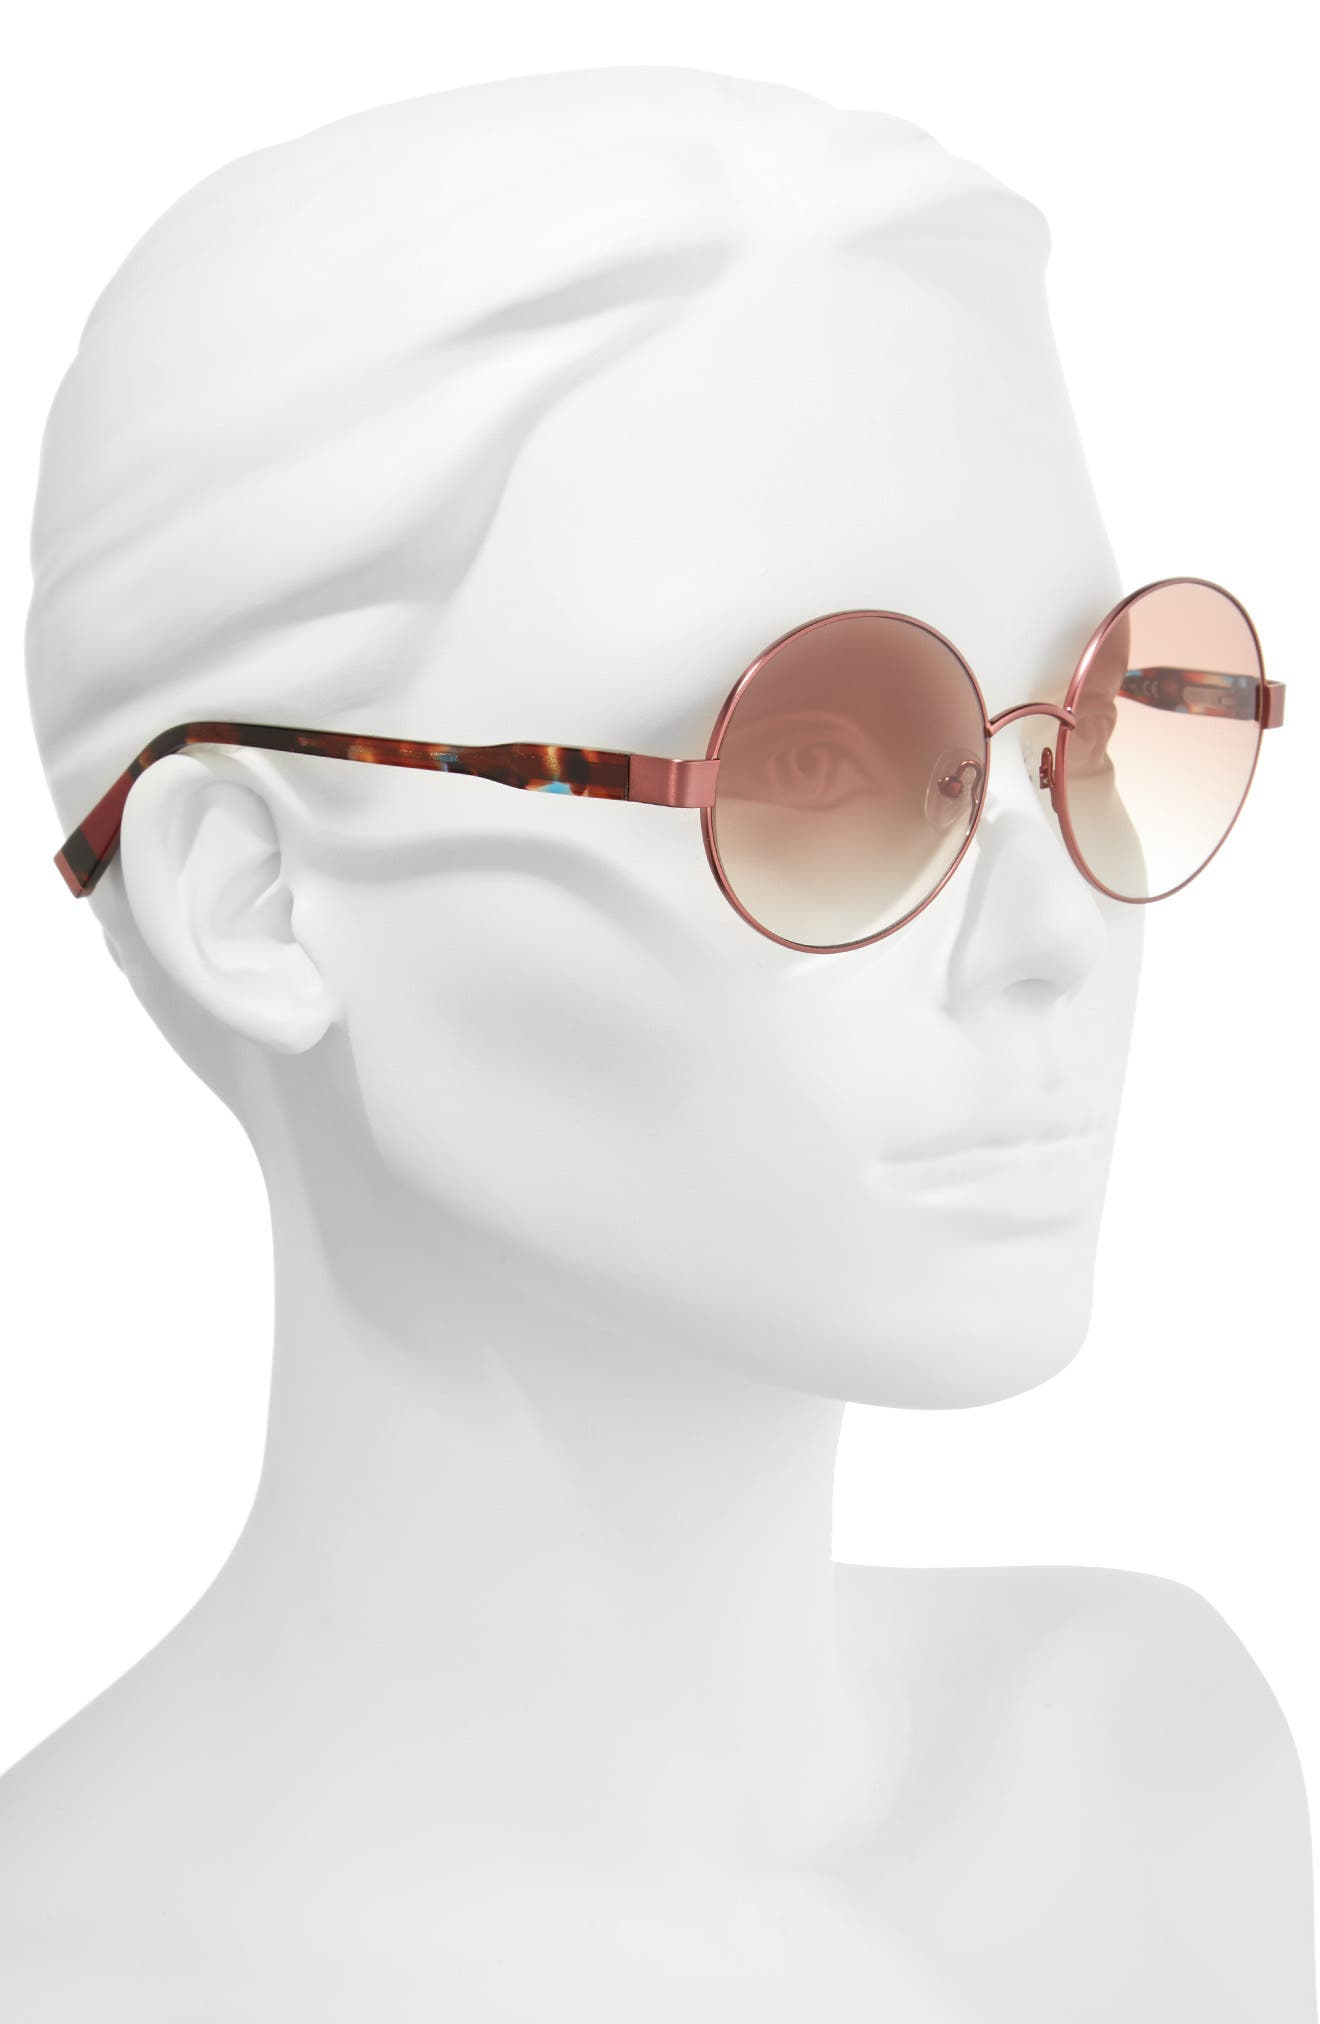 53mm Round Sunglasses,                             Alternate thumbnail 2, color,                             MATTE BERRY